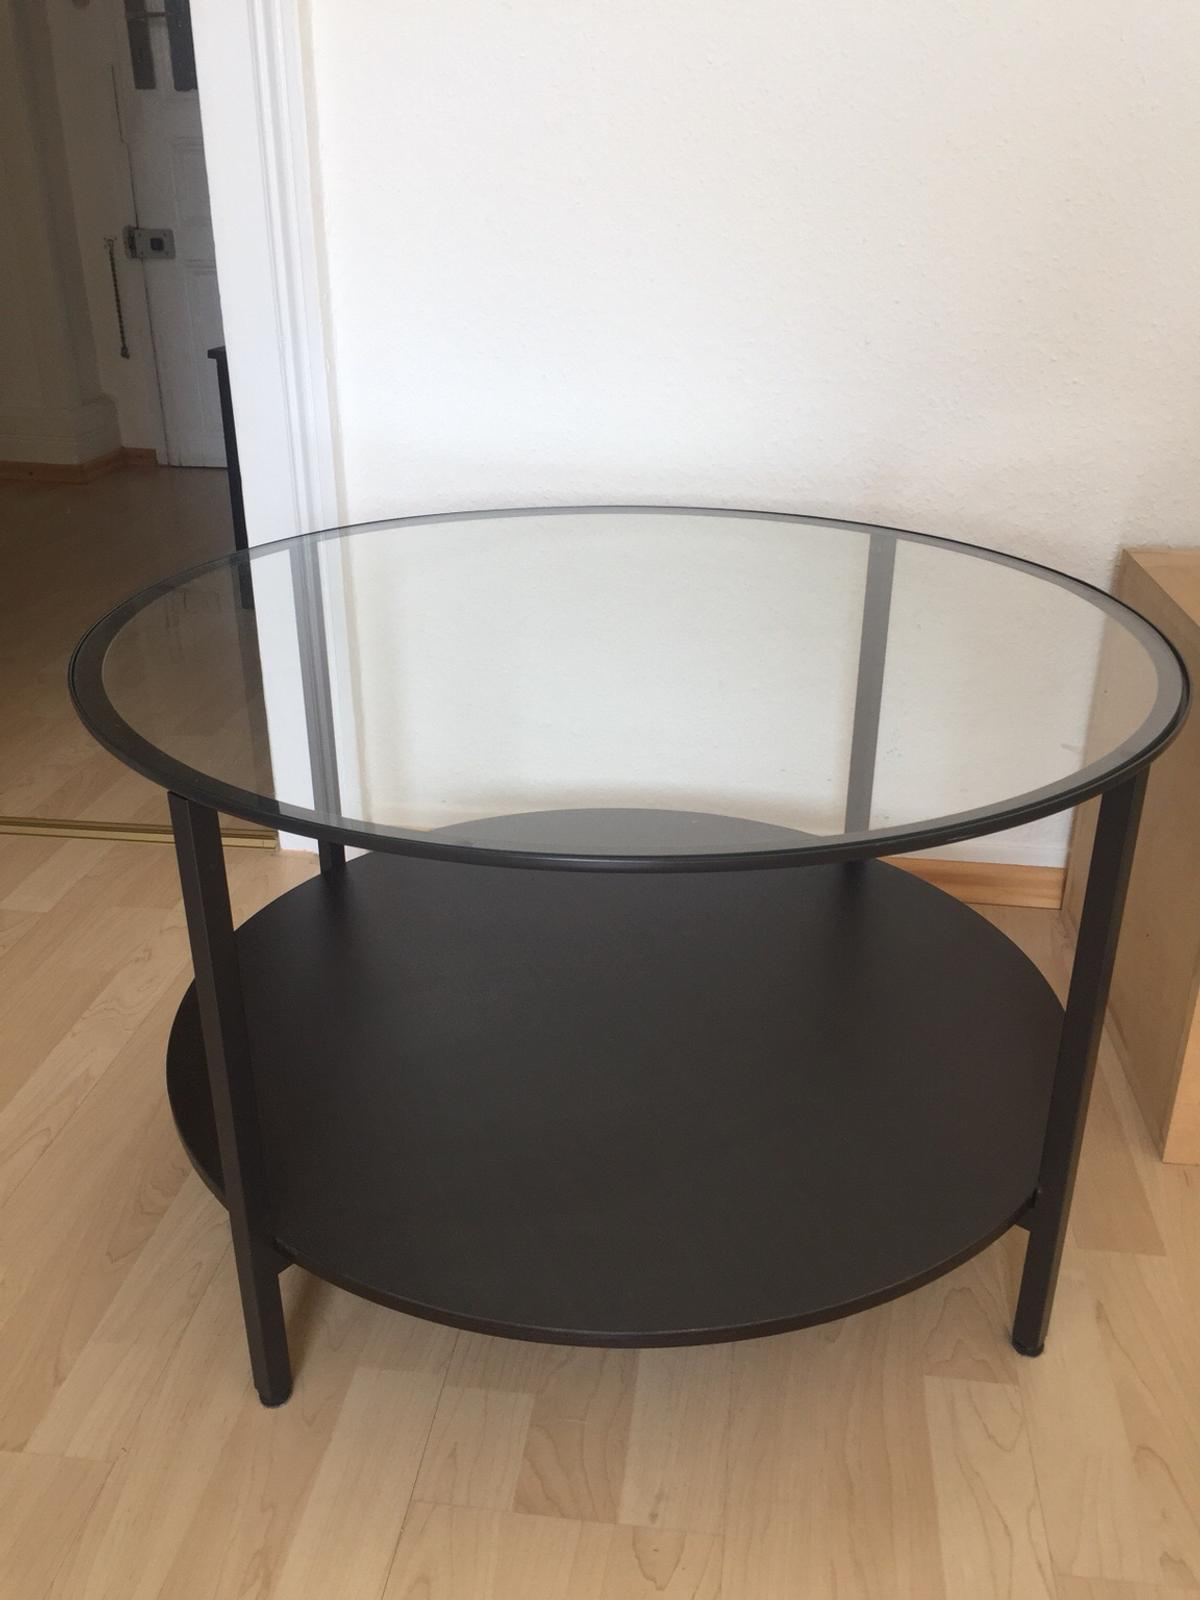 VittsjÖ Couchtisch Ikea Glastisch In 60385 Frankfurt Am Main For 30 00 For Sale Shpock